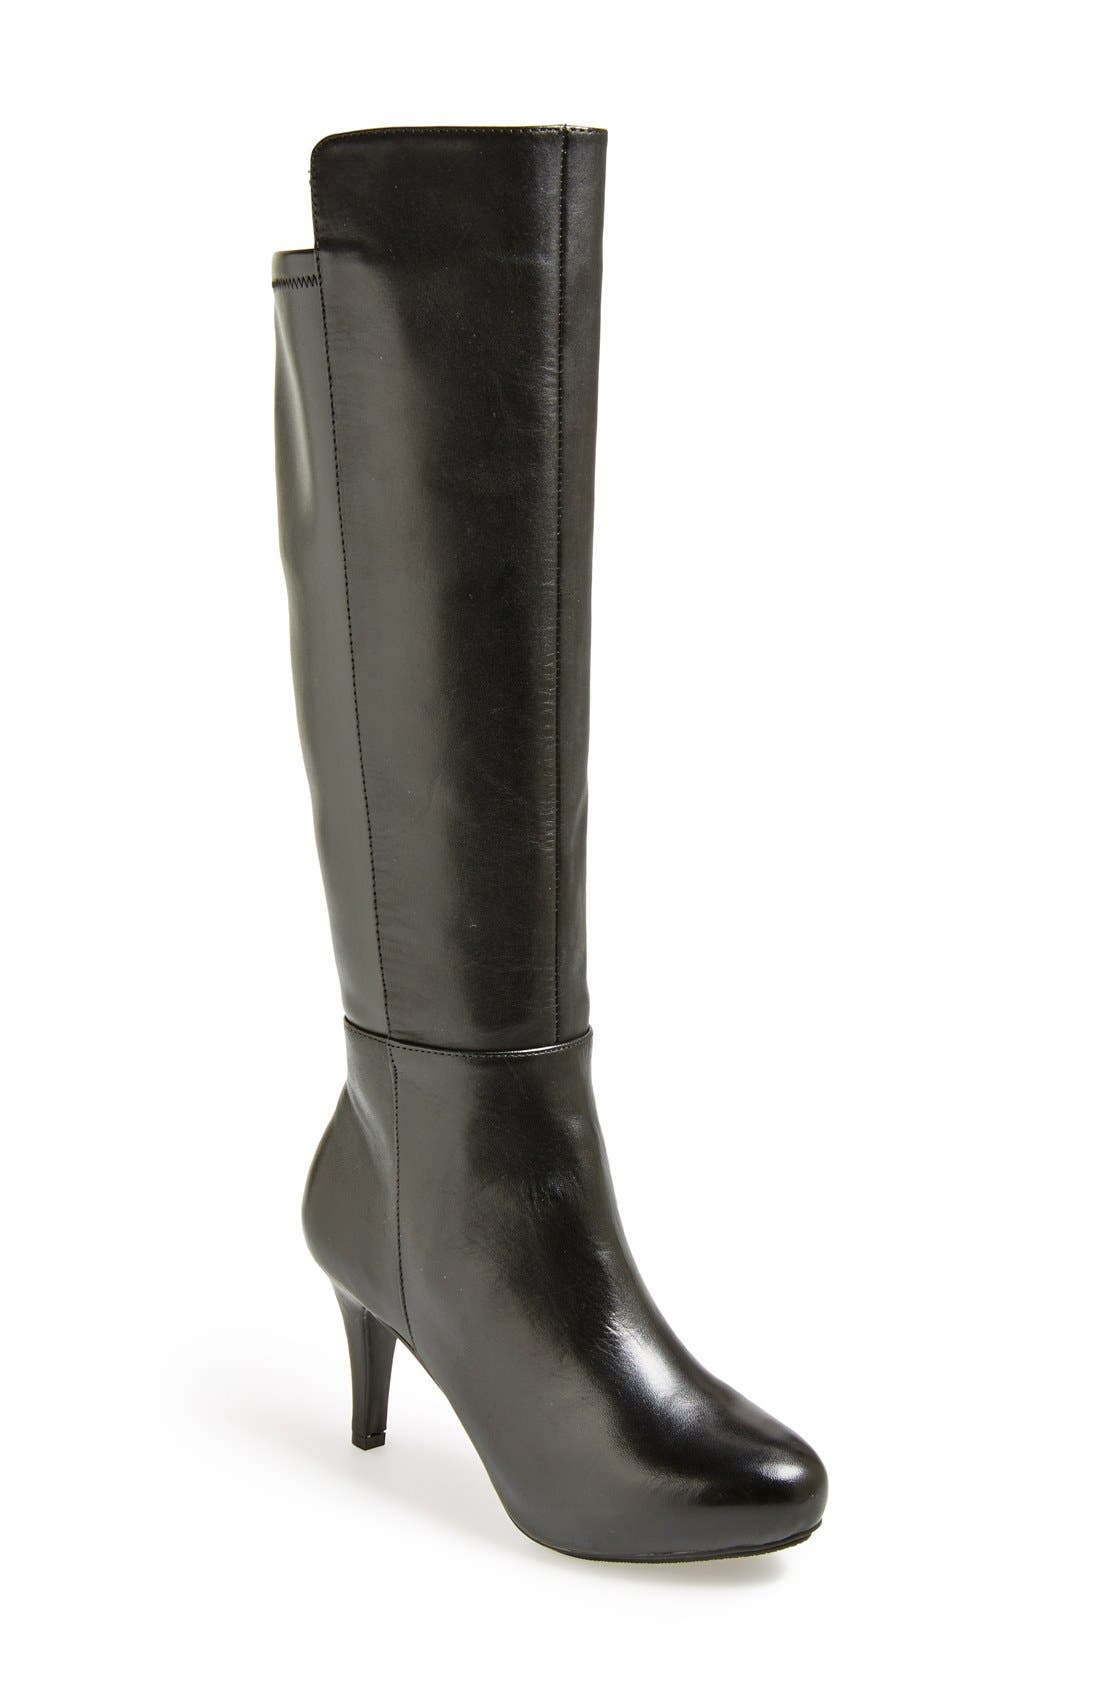 Main Image - Me Too 'Mirage' Knee High Leather Boot (Women)